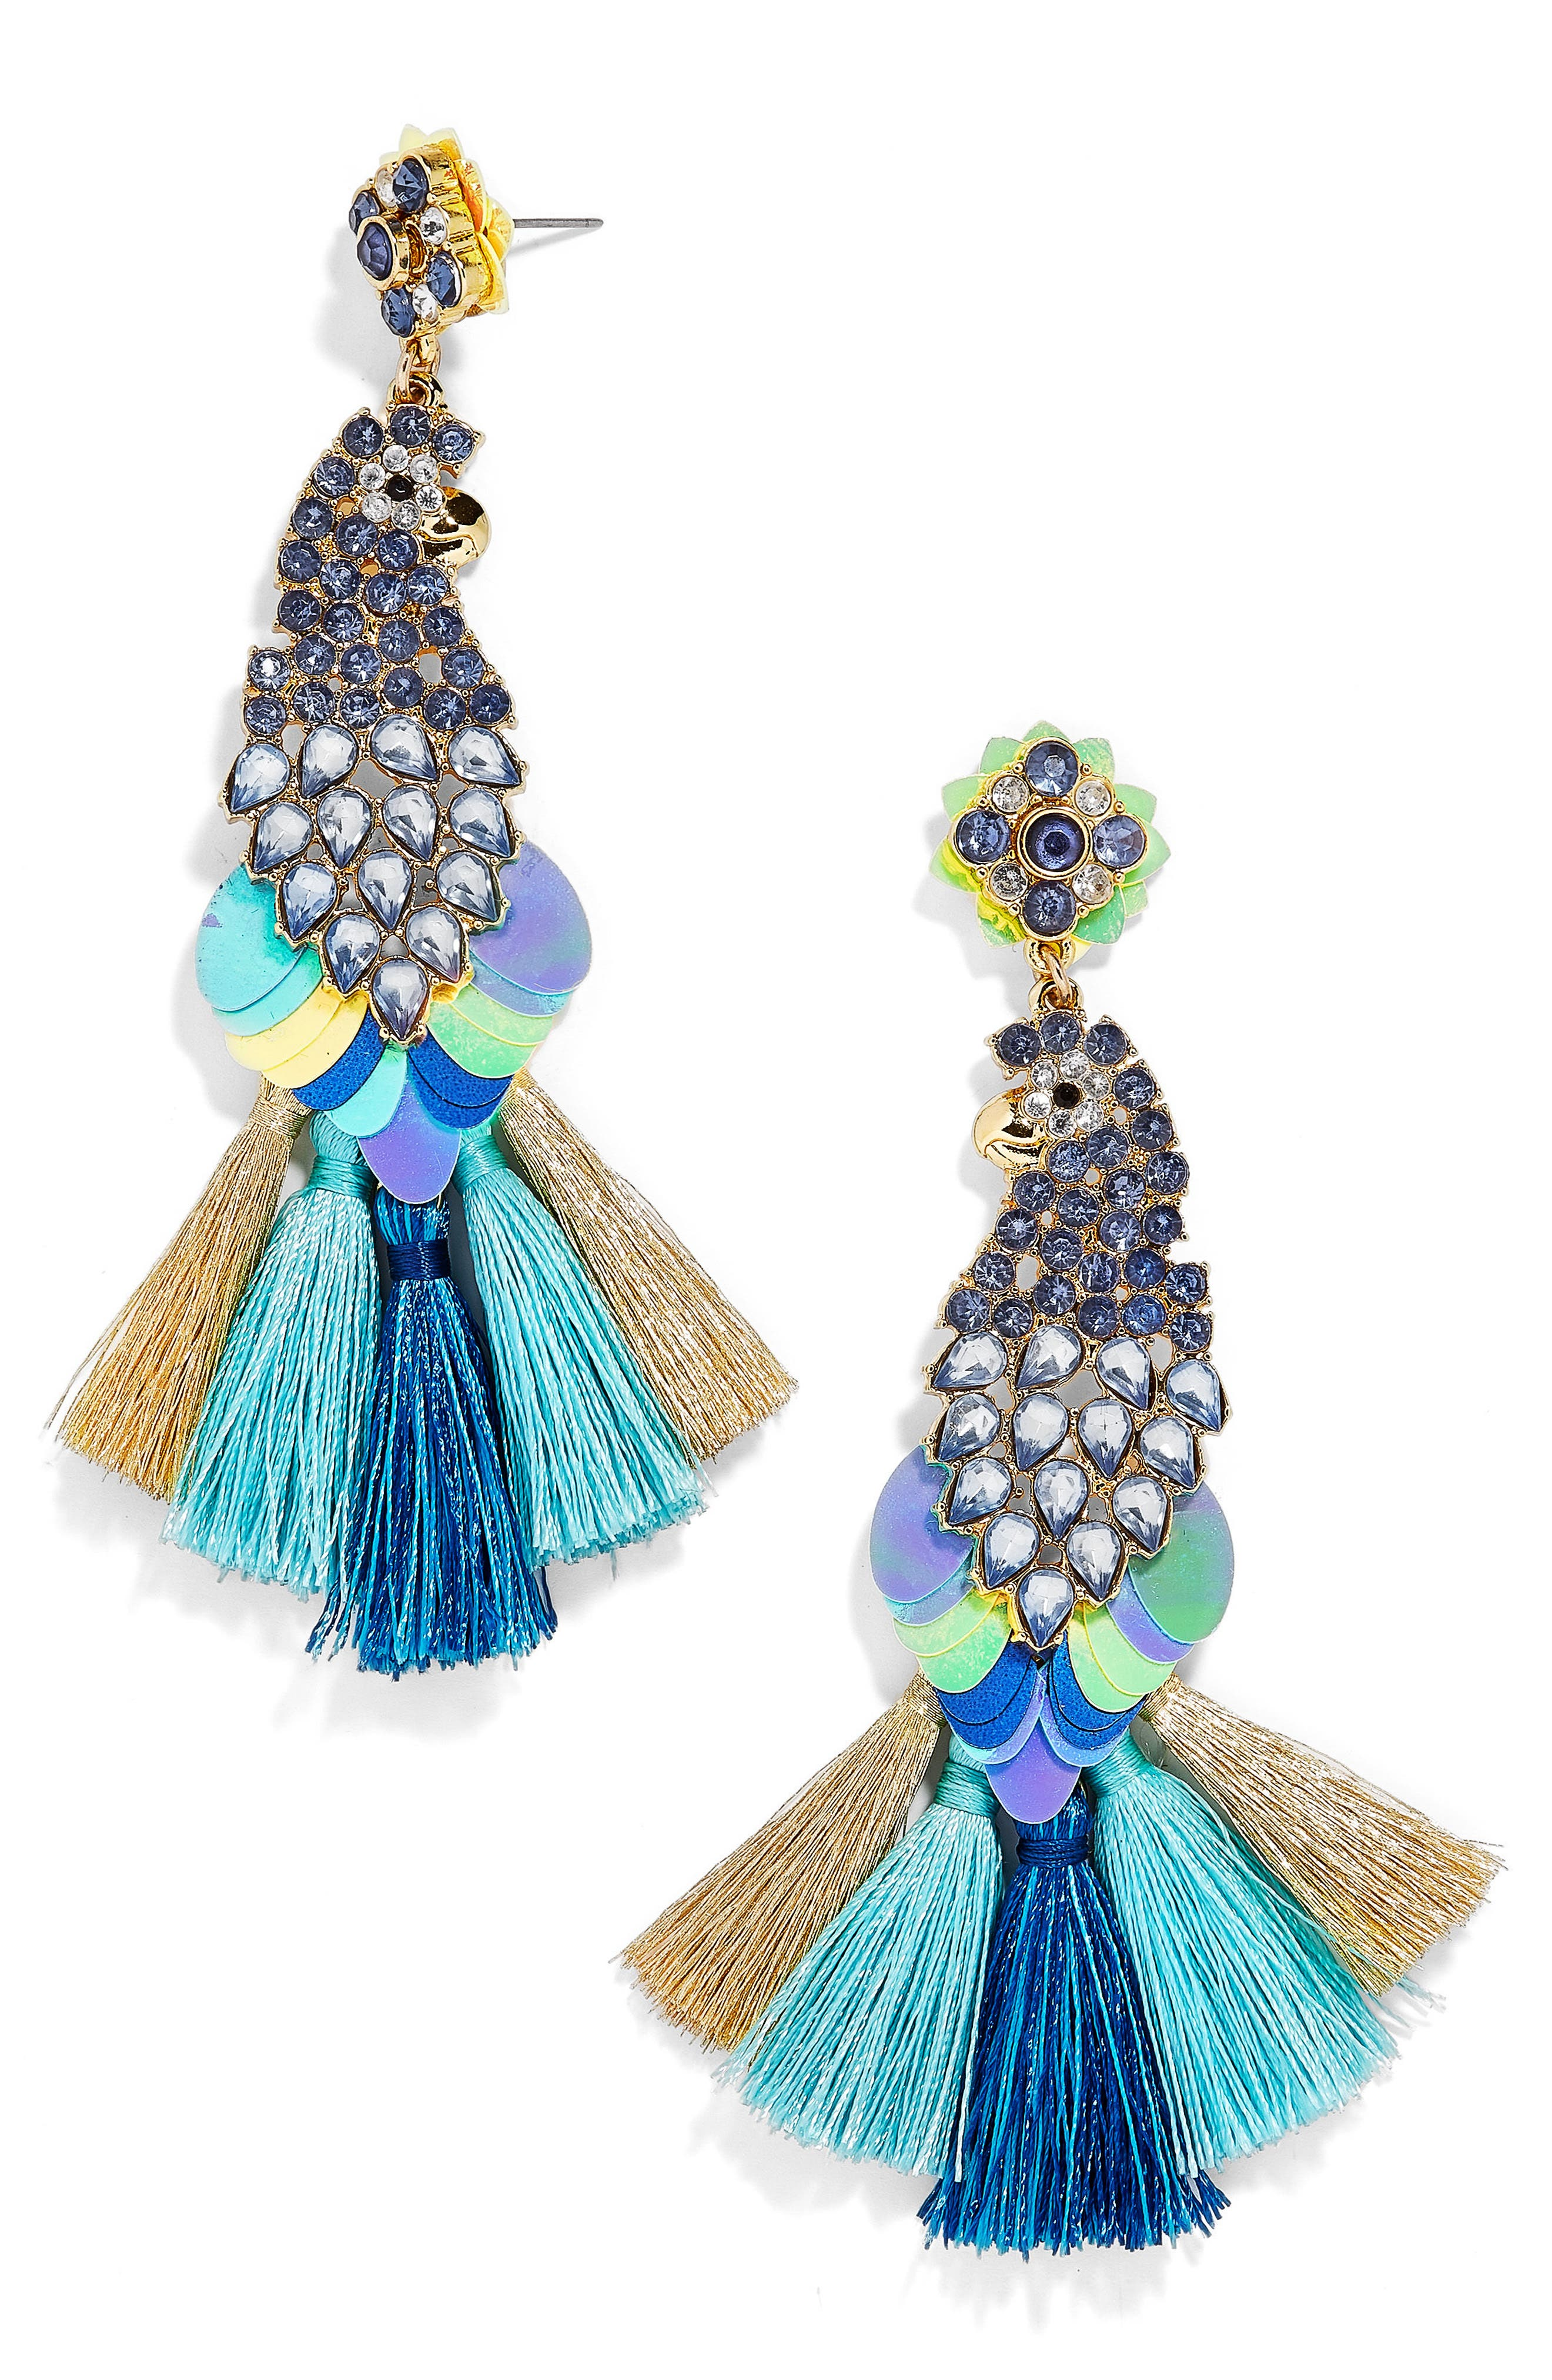 Macaw Statement Earrings,                             Main thumbnail 1, color,                             Blue